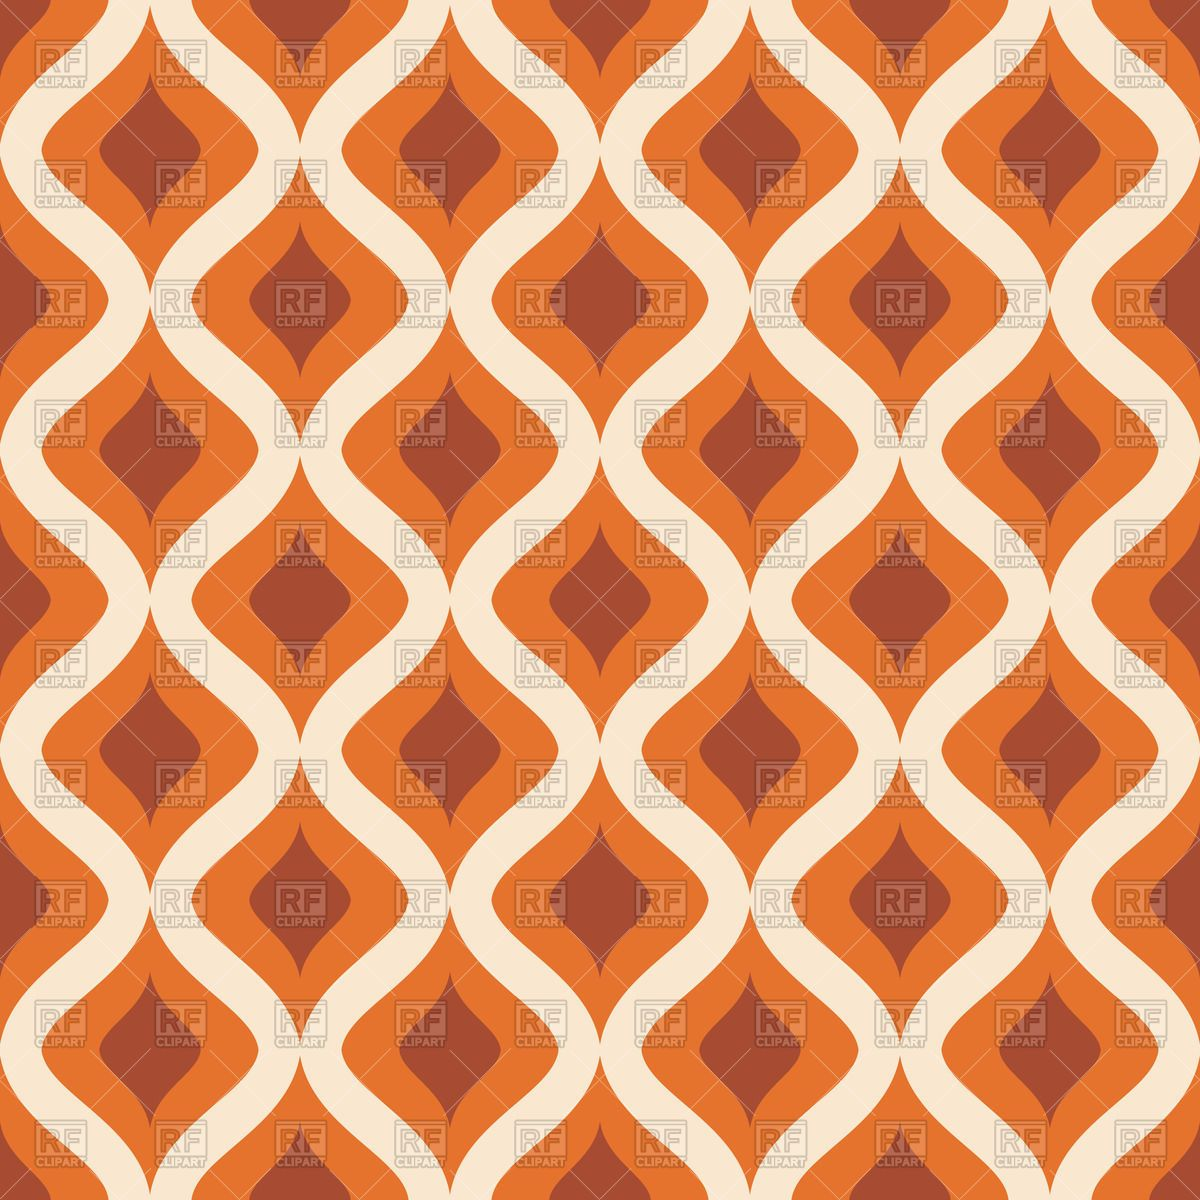 Vertical Wavy Ornament Orange Brown Retro Wallpaper Vector